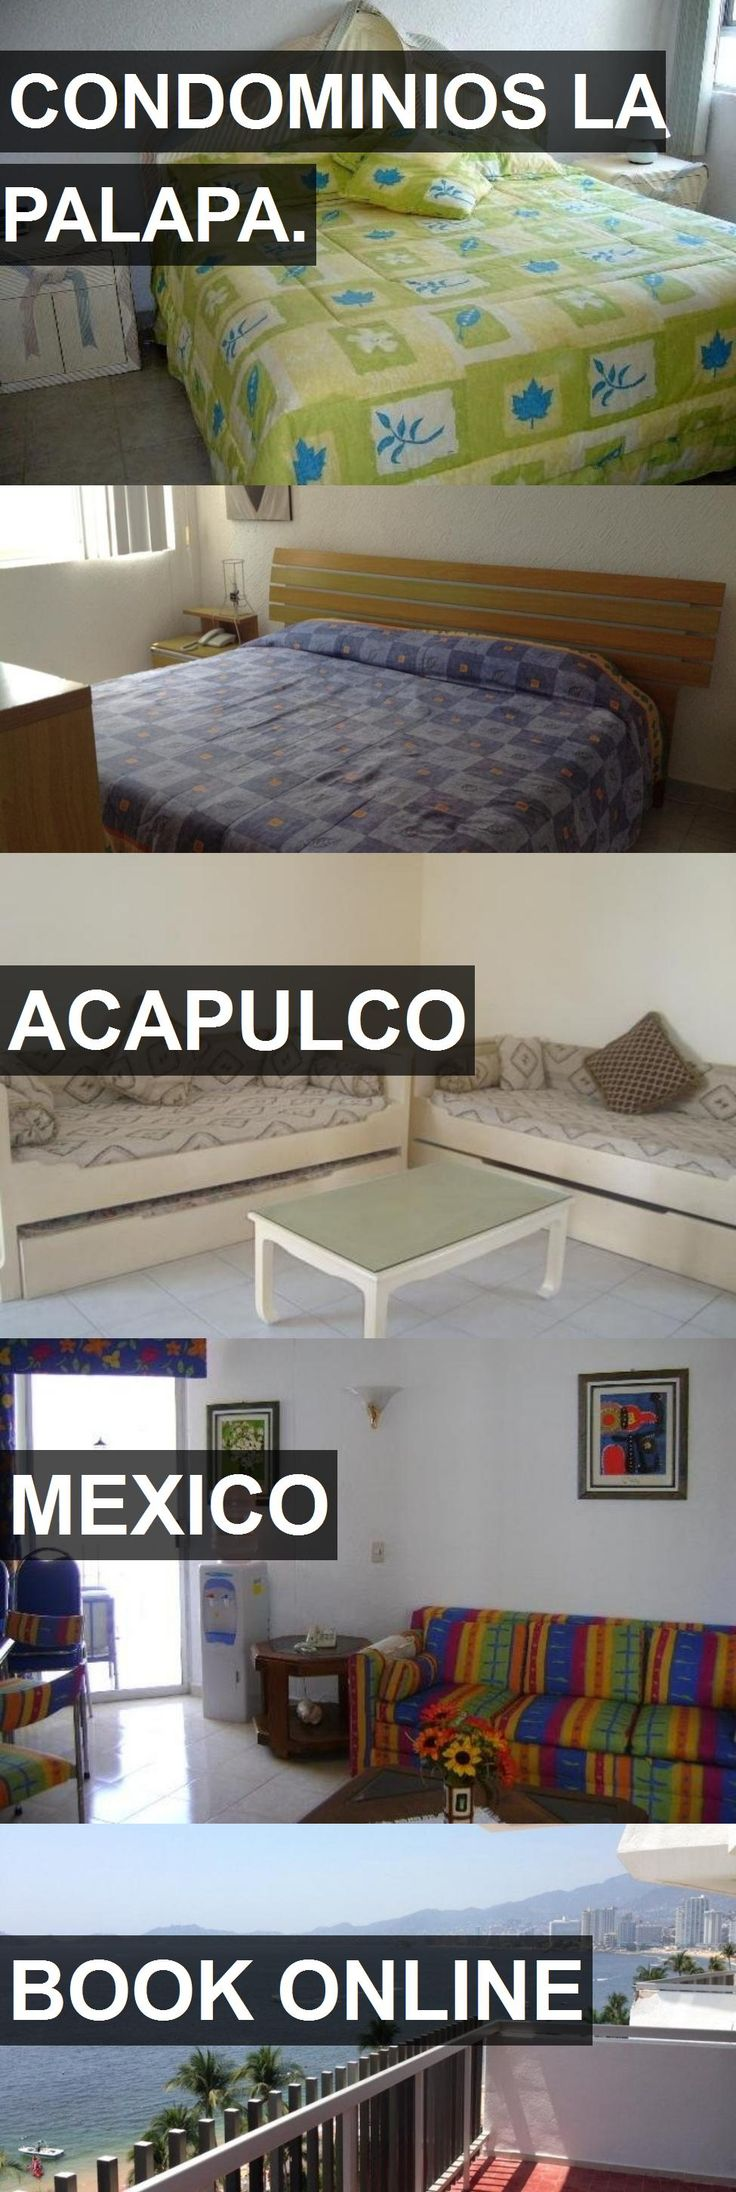 Hotel CONDOMINIOS LA PALAPA. in Acapulco, Mexico. For more information, photos, reviews and best prices please follow the link. #Mexico #Acapulco #travel #vacation #hotel